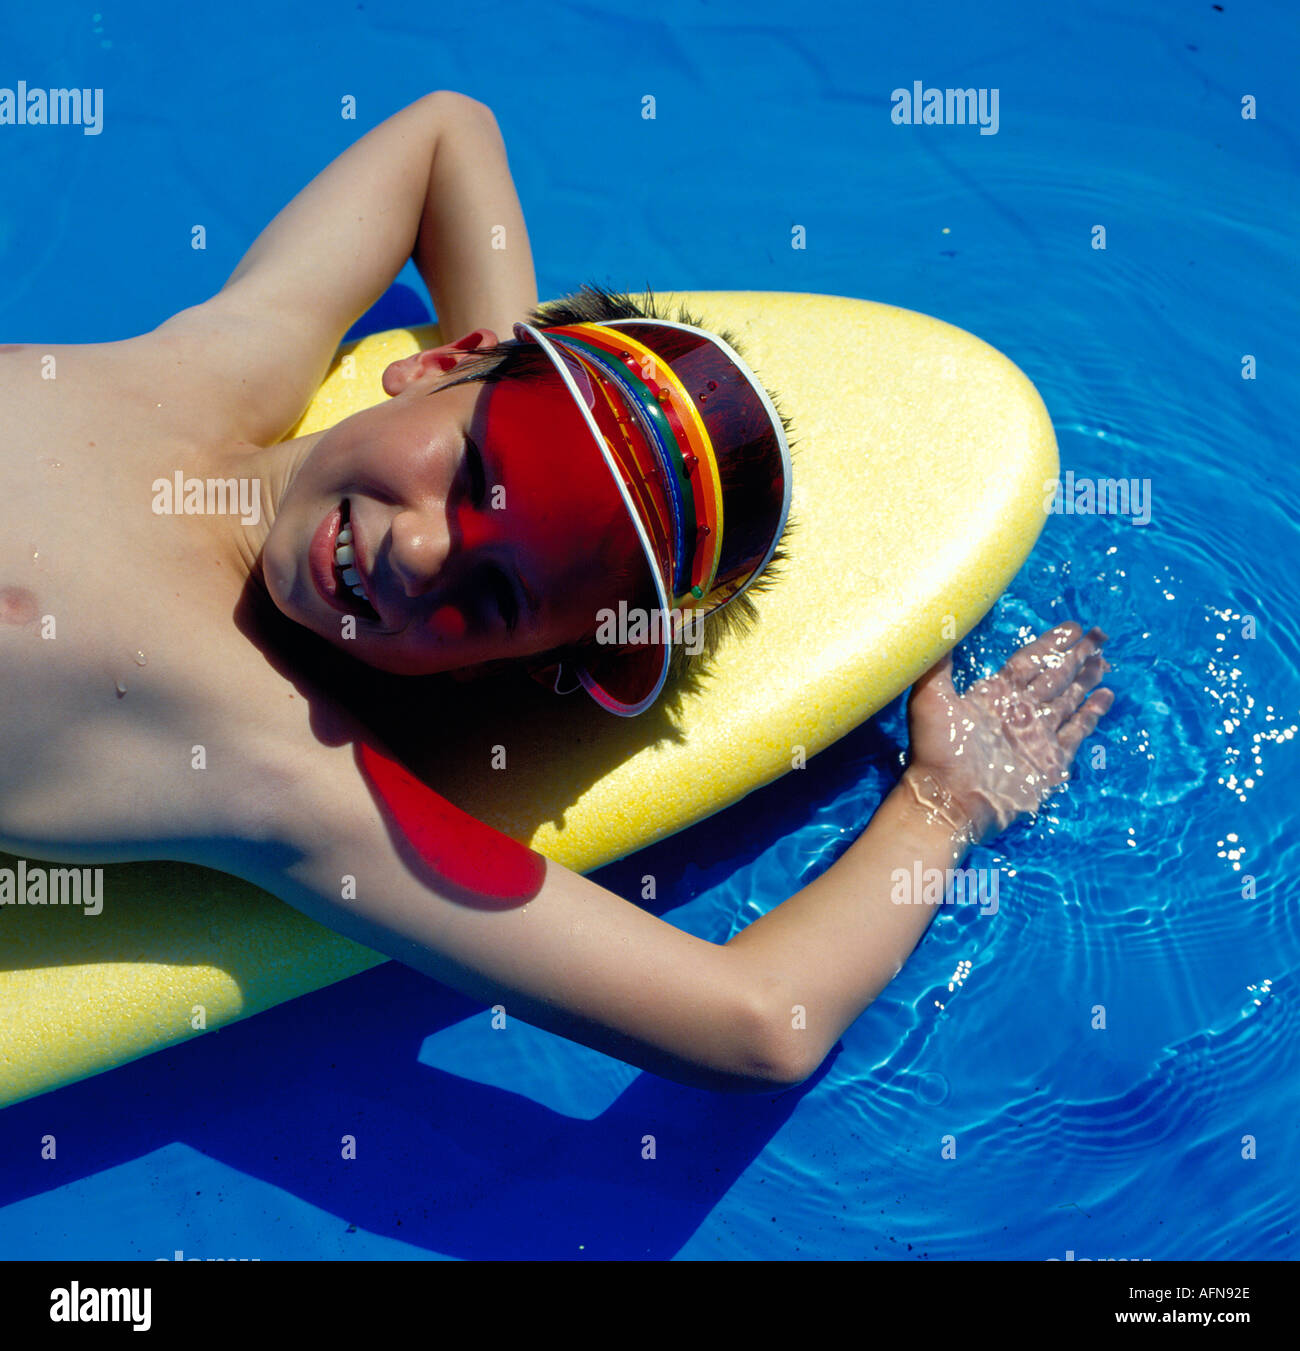 caucasian preteen boy enjoys floating on surfboard in outdoor pool. Photo by Willy Matheisl - Stock Image